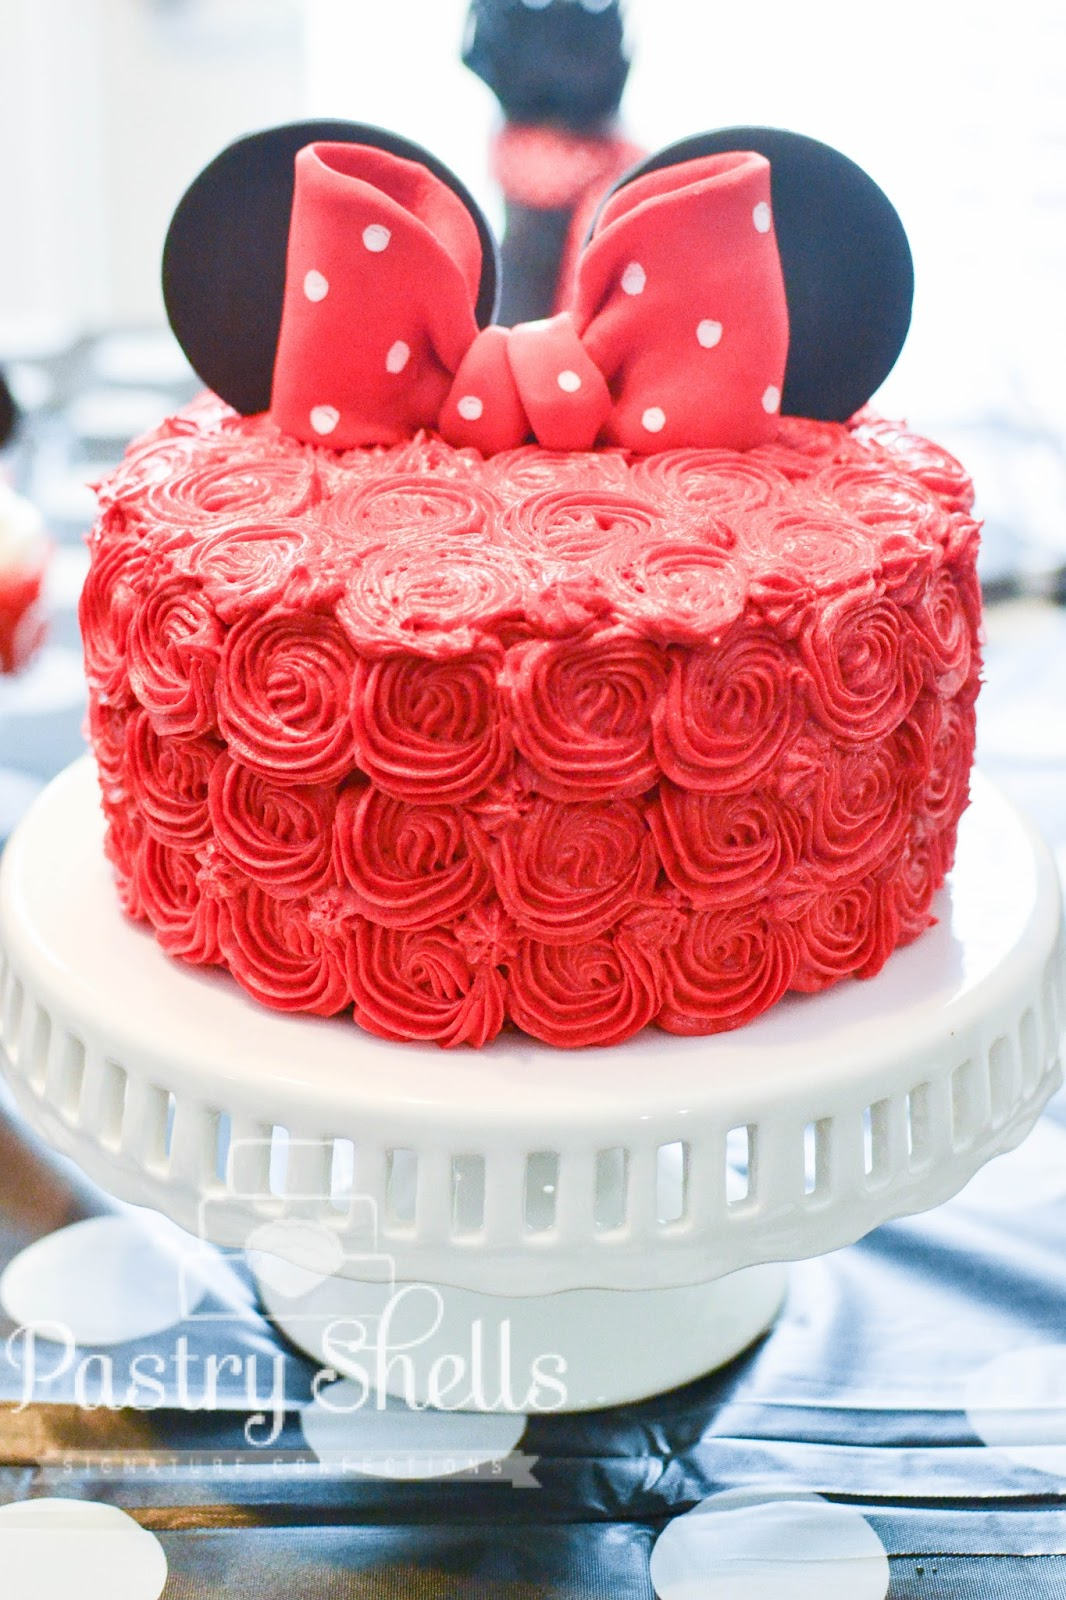 Phenomenal How To Make A Beautiful Minnie Mouse Rosette Cake Easily Pastry Funny Birthday Cards Online Alyptdamsfinfo